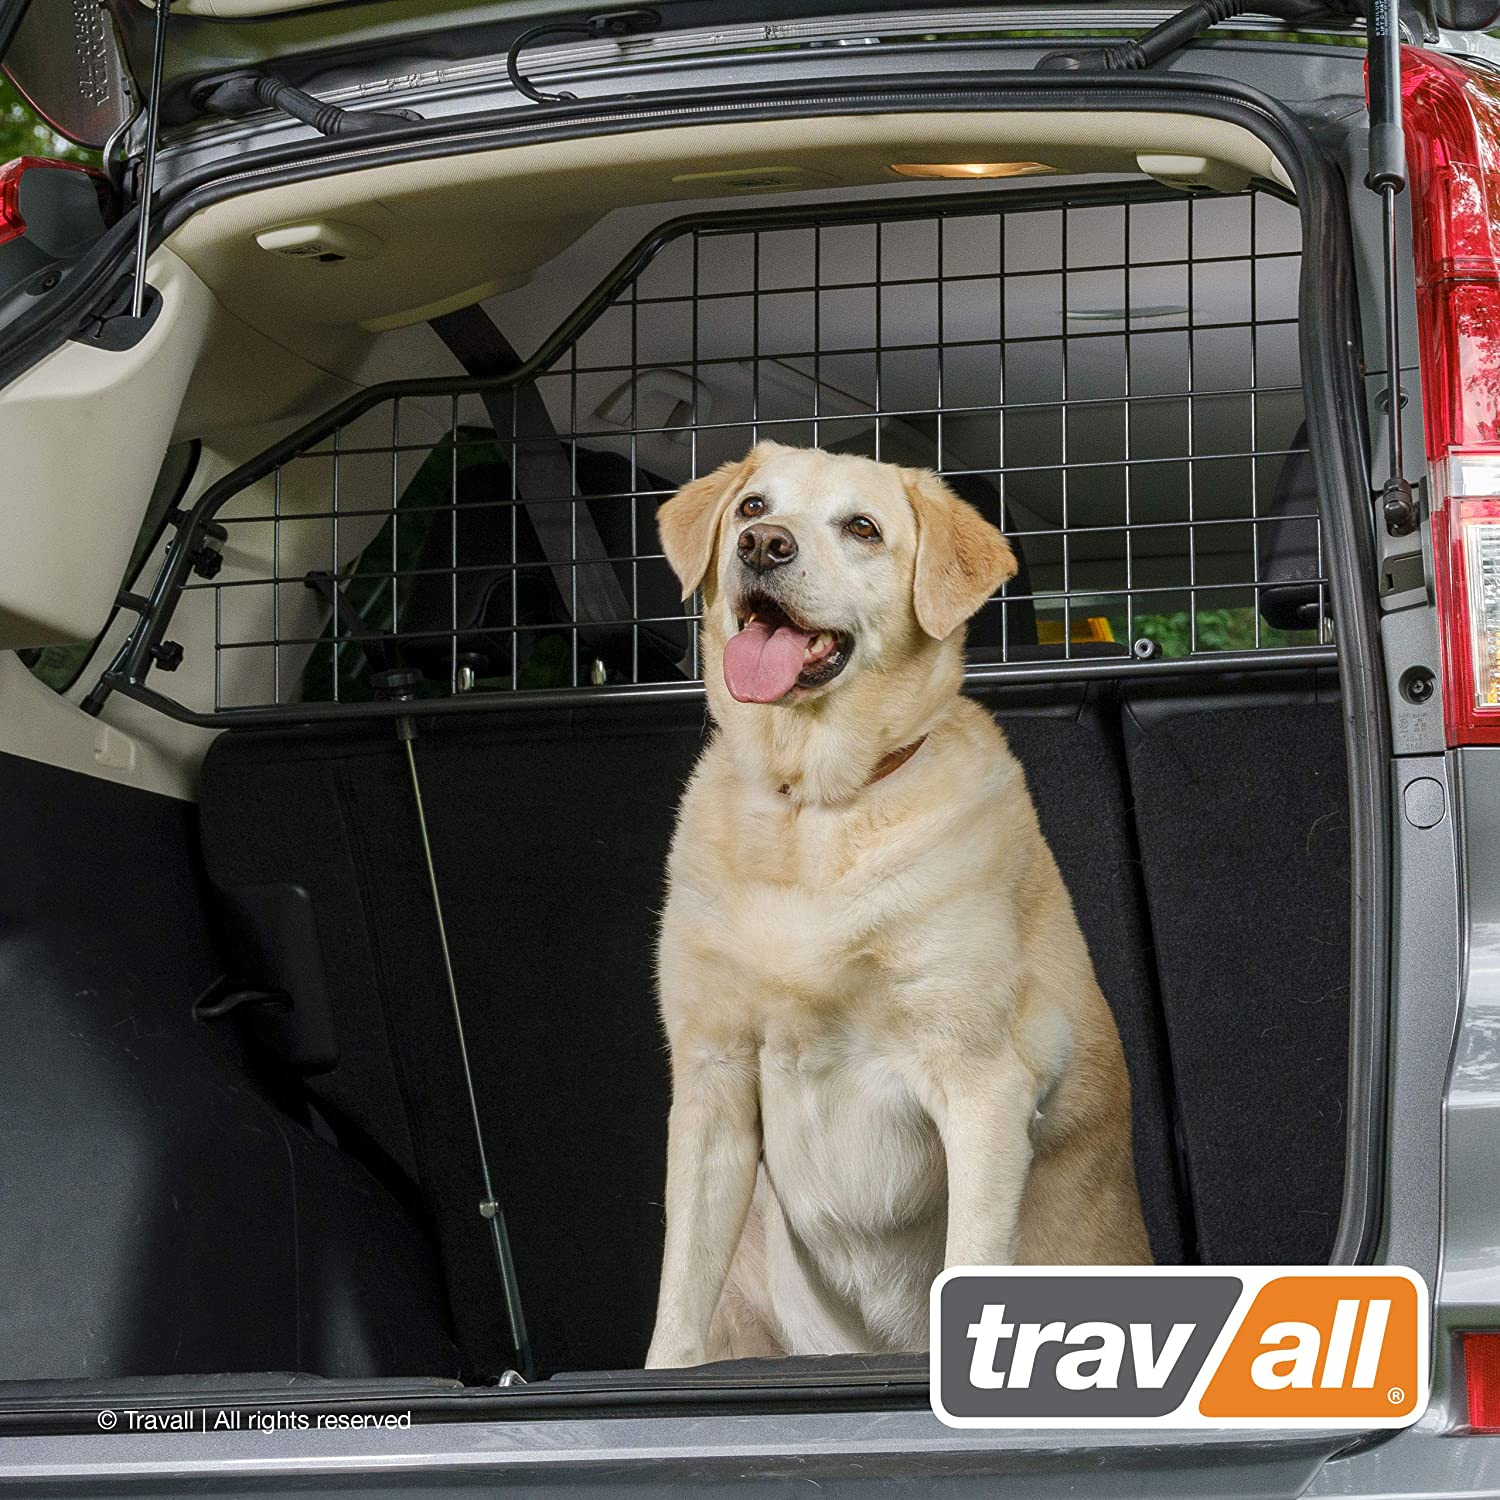 Travall Guard Compatible with BMW X3 Without Sunroof 2003-2010 TDG1111 – Rattle-Free Steel Pet Barrier